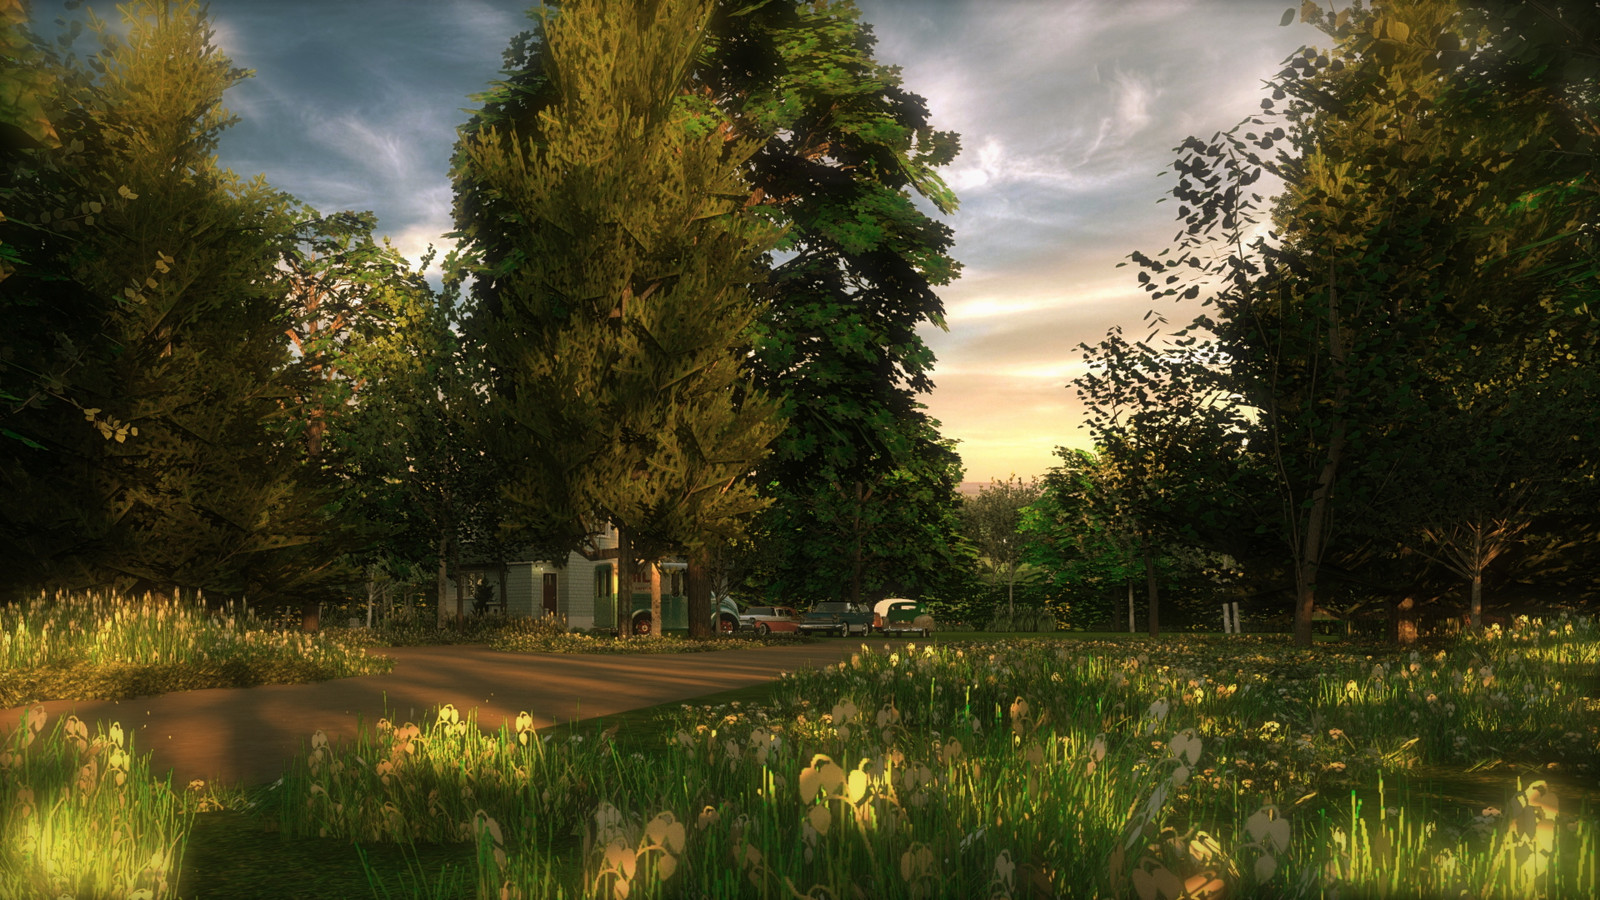 """""""Mason Farm - Heaven's Gate"""" Summer Sun Collection  23 Masonfarm HD1080 28 - iP Kodac  """"SketchUp to LayOut"""" The Mason Farm Renders for the launching of the new book """"SketchUp to LayOut"""" http://bit.ly/2j0d0Wh by MasterSketchup."""